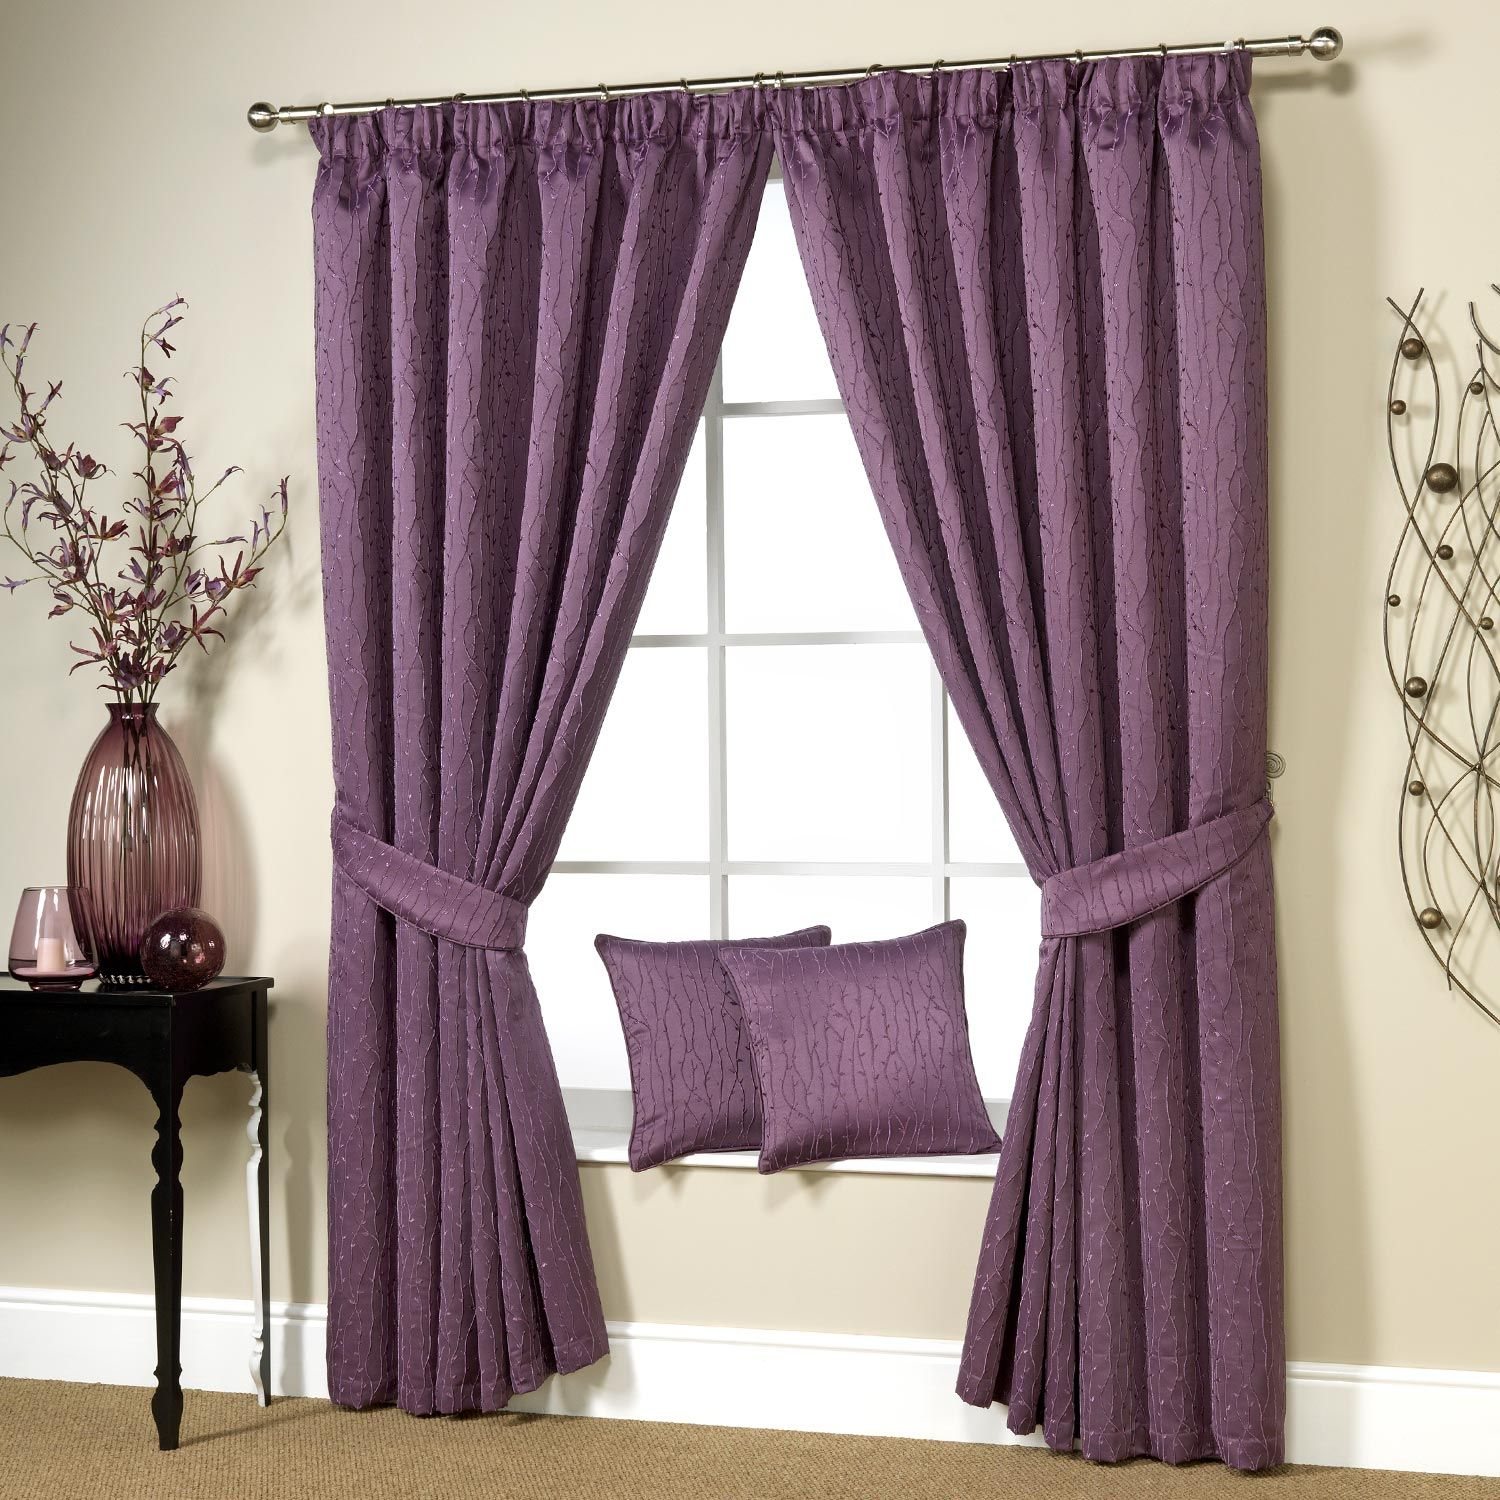 L Marvelous Jcpenney Faux Silk Curtains Jcpenney Curtain